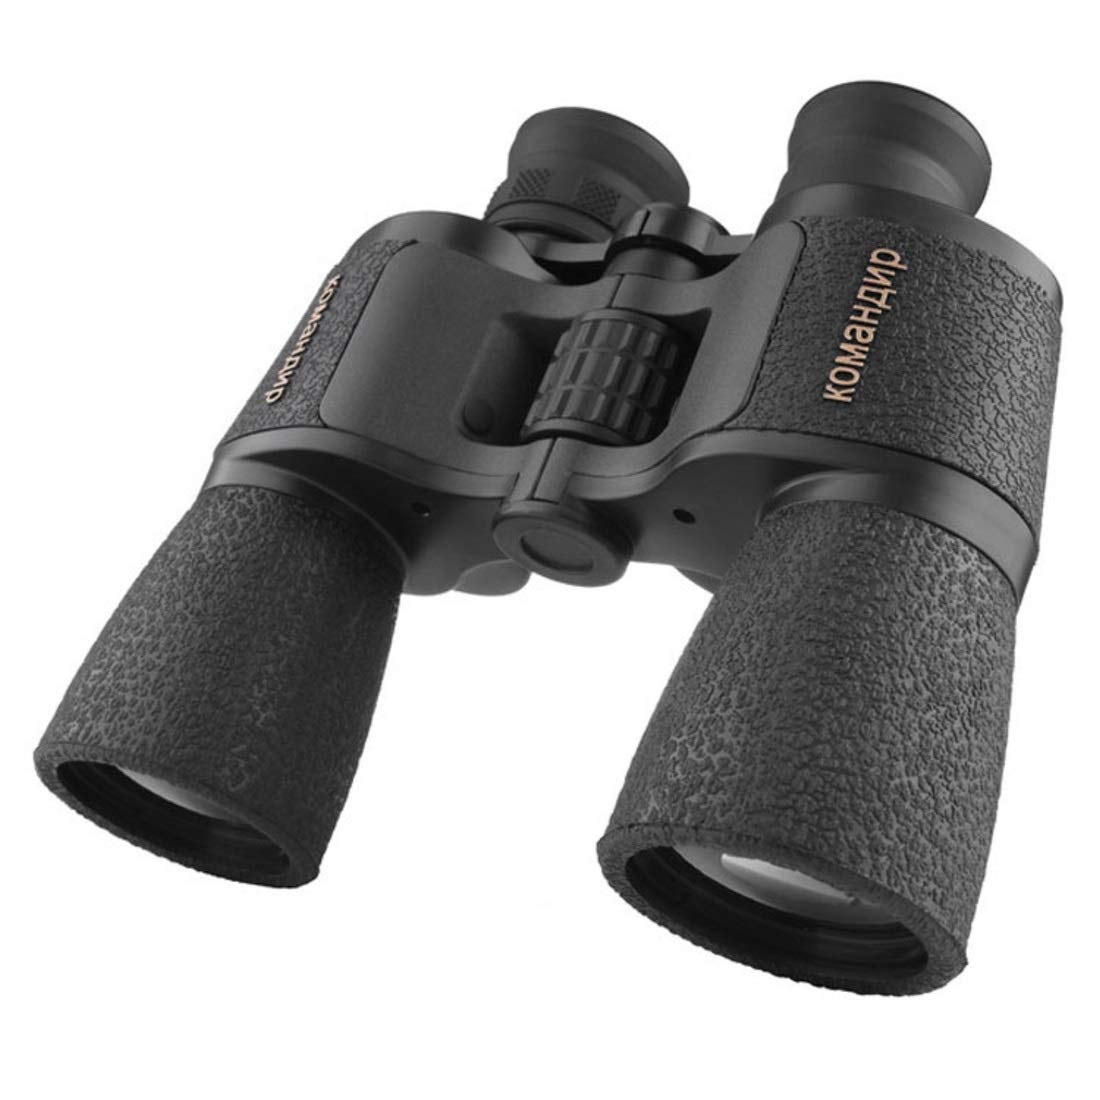 Souliyan 20x50 Compact Binoculars for Kids and Adults, Folding Metal Telescope for Bird Watching, Outdoor Camping